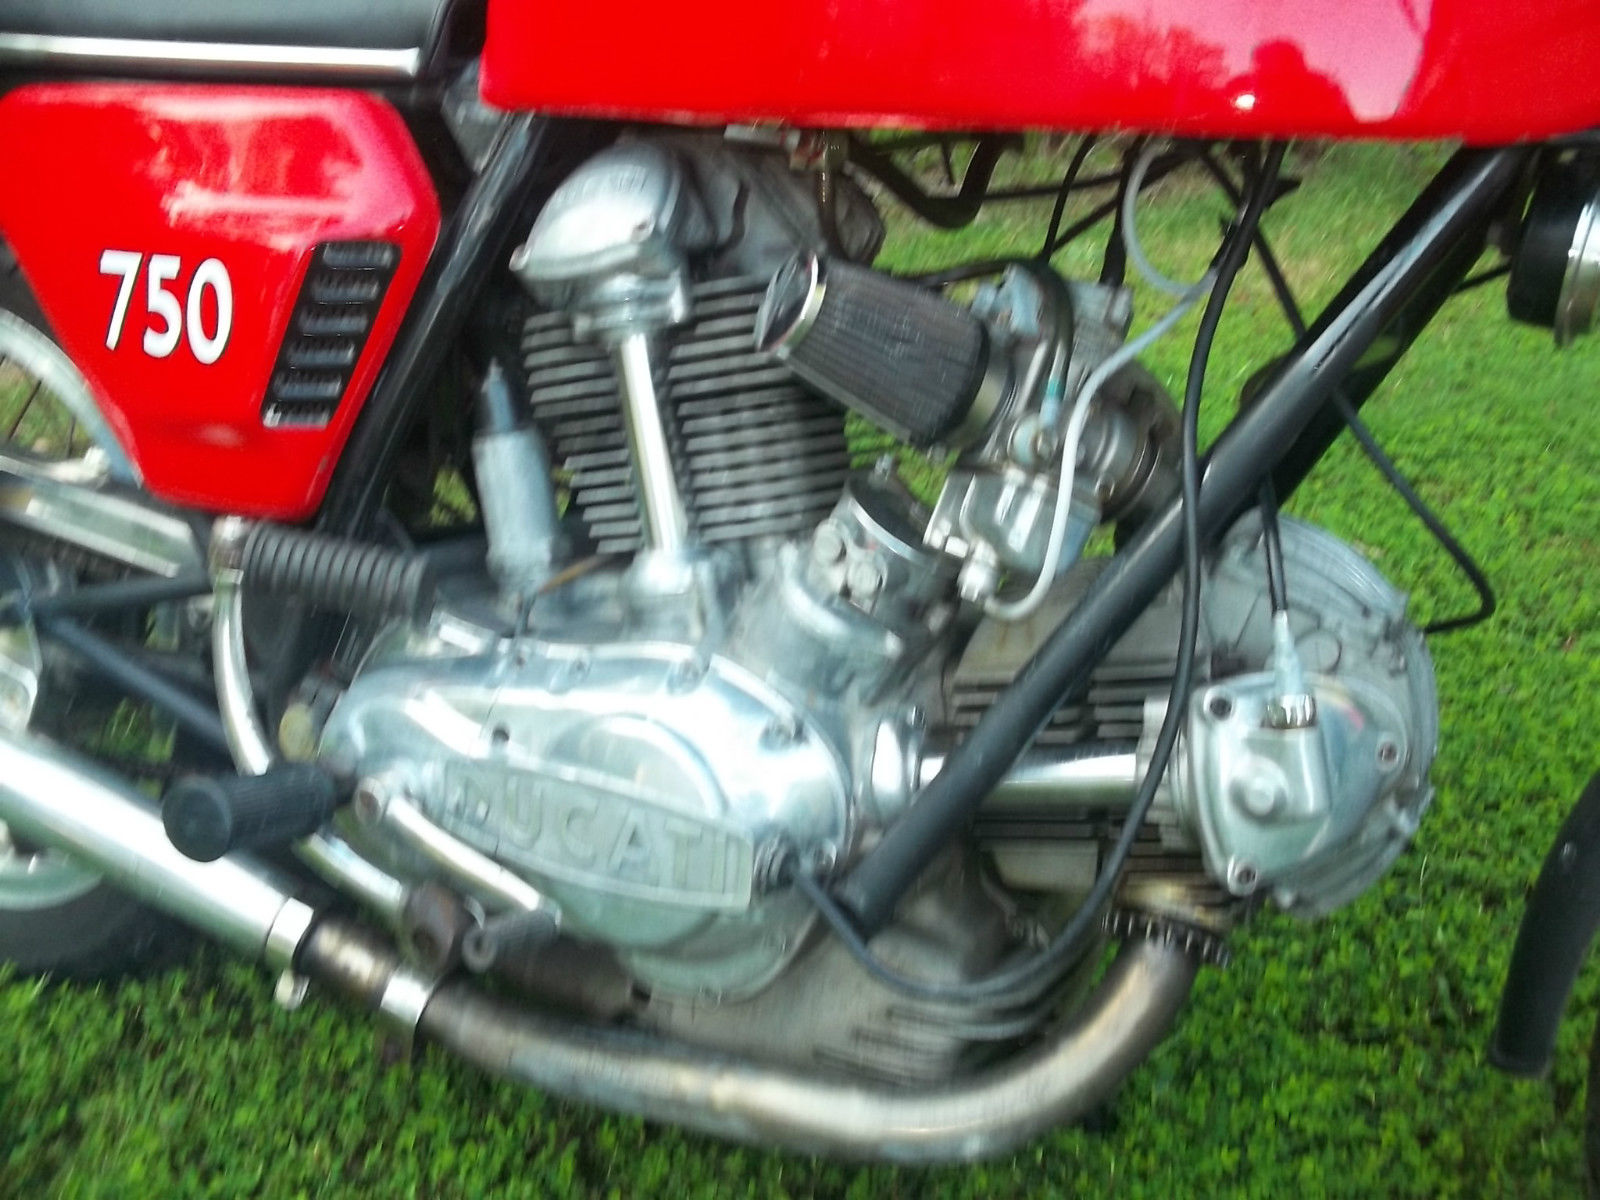 1974 Ducati 750 Gt Bevel Fuse Box Other